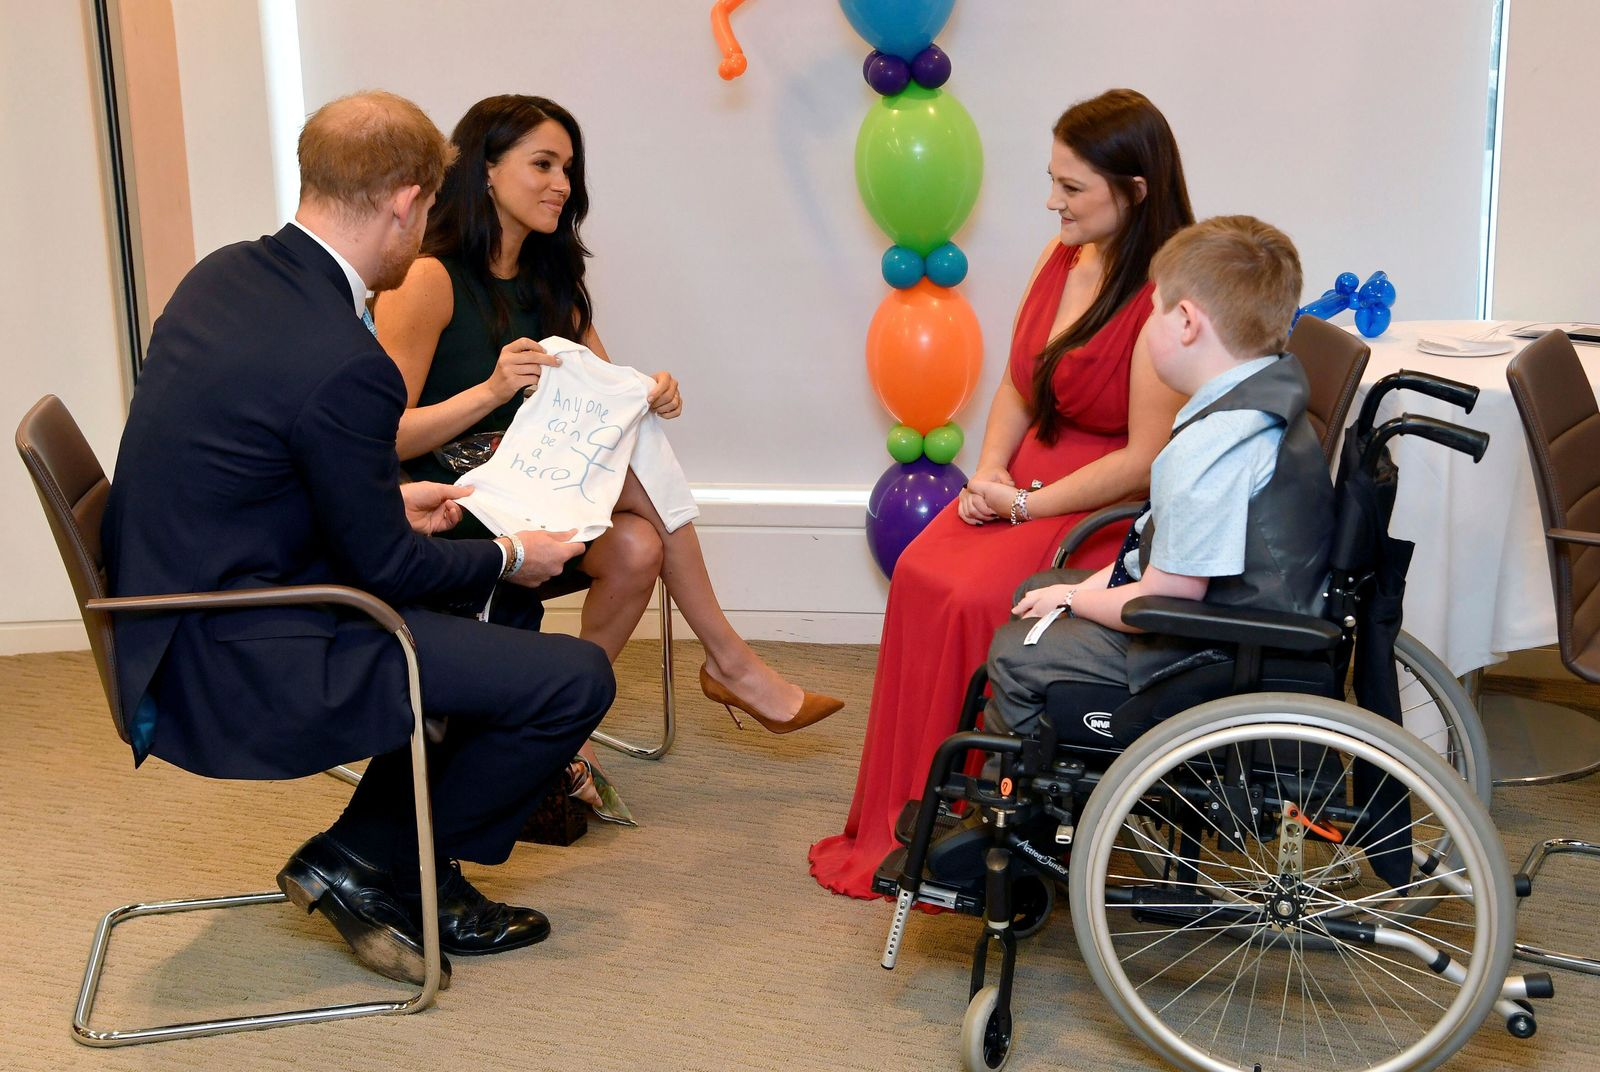 Britain's Prince Harry and Duchess of Sussex, left, look at a t-shirt designed by William Mgee and mother Kelly during the annual WellChild Awards in London, Tuesday Oct. 15, 201. (Toby Melville/Pool via AP)